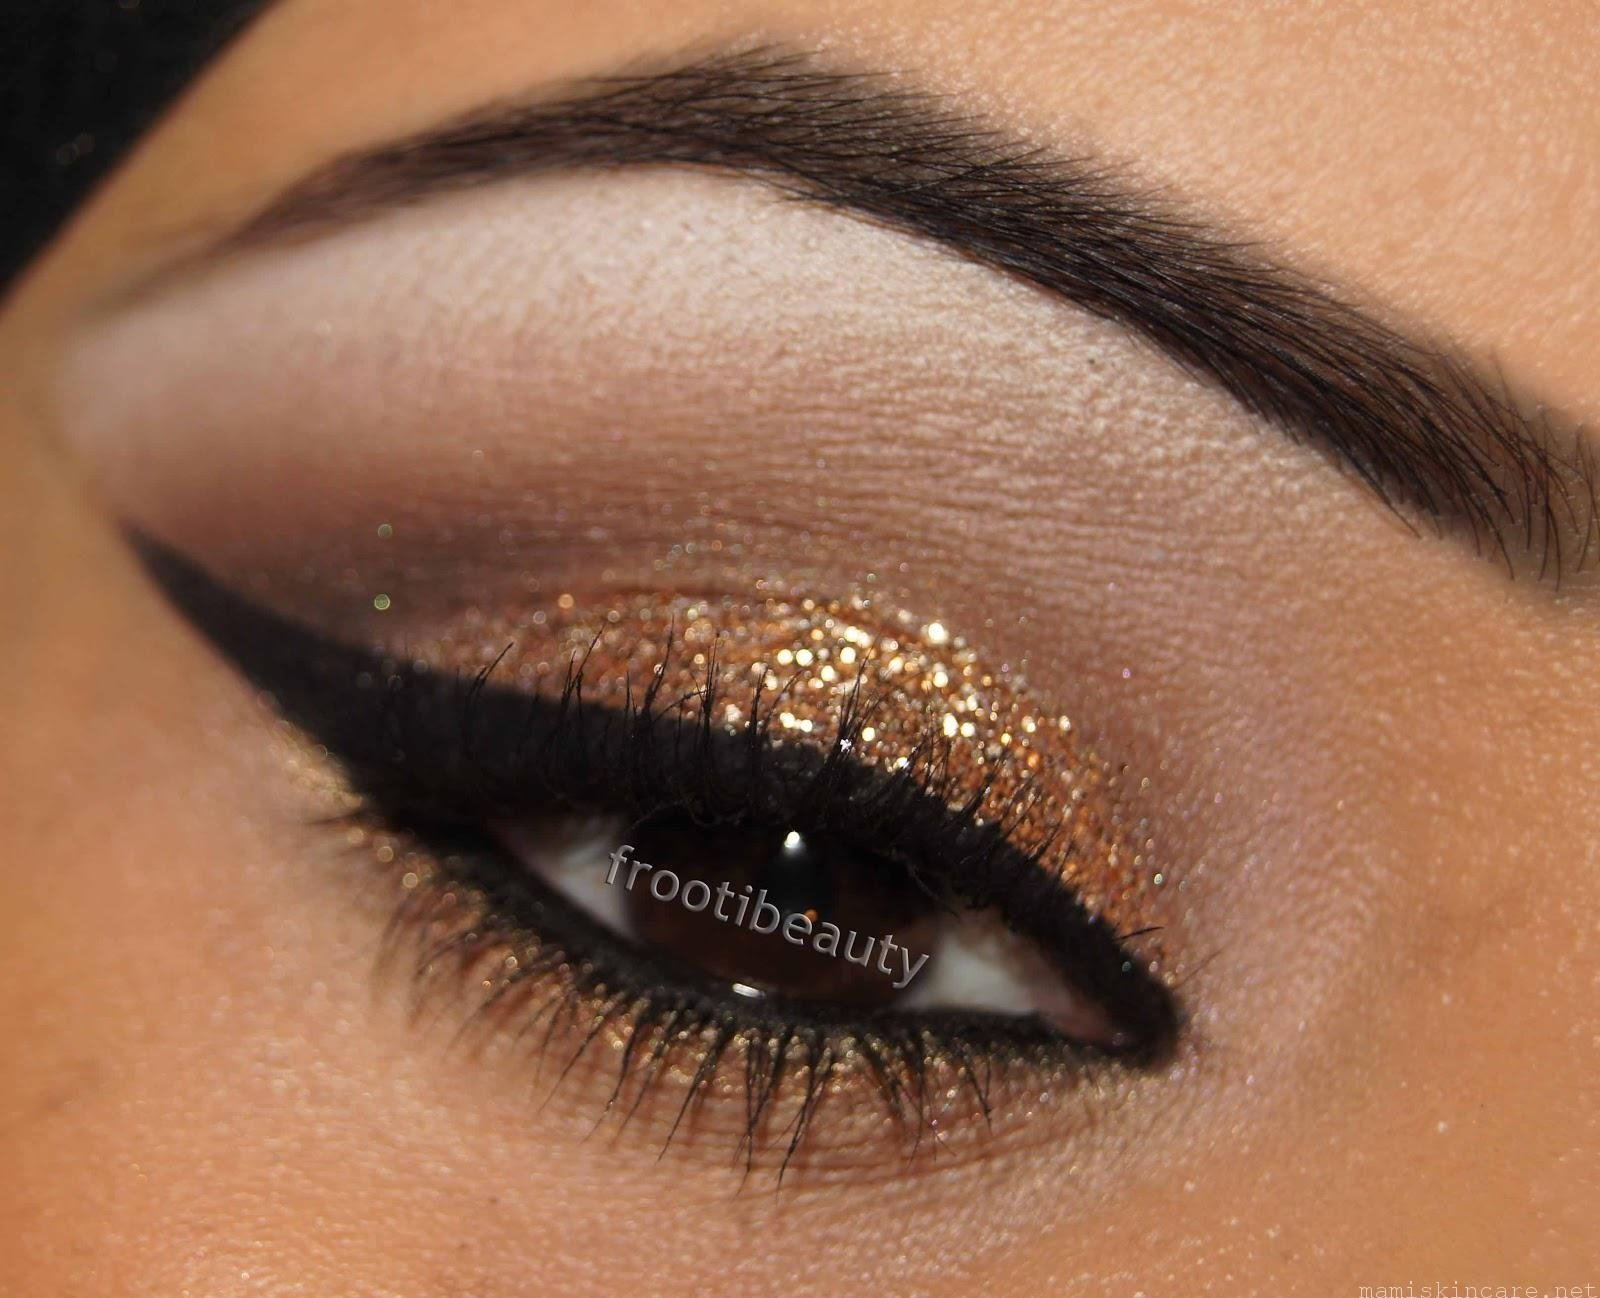 10 Lovable Makeup Ideas For Dark Brown Eyes makeup brands with makeup ideas for dark brown eyes with applied my 1 2021